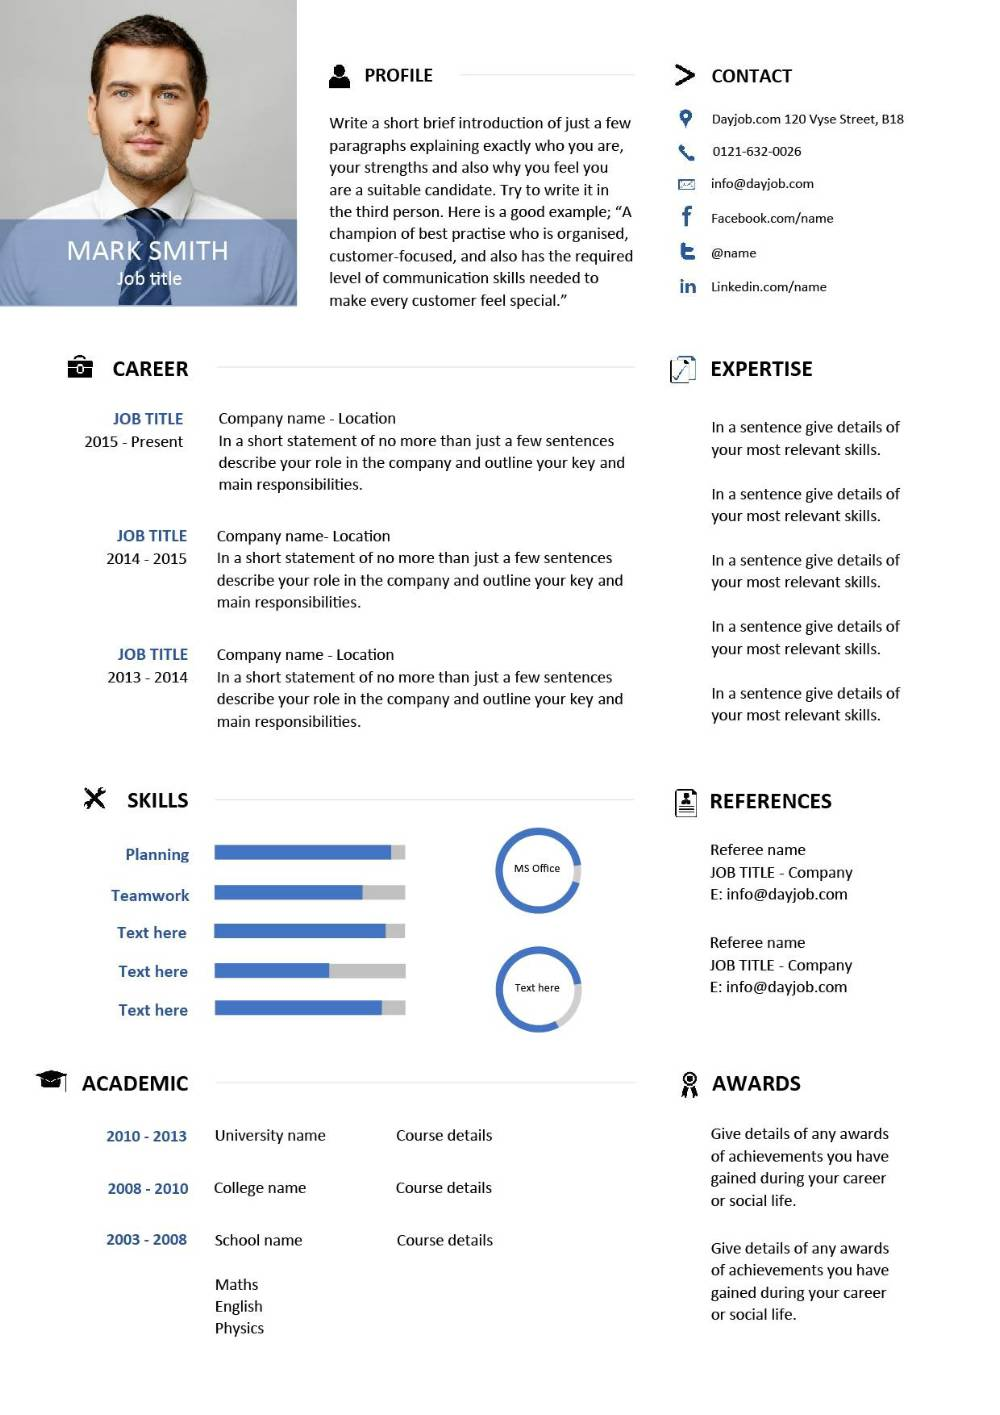 free templates for your cv